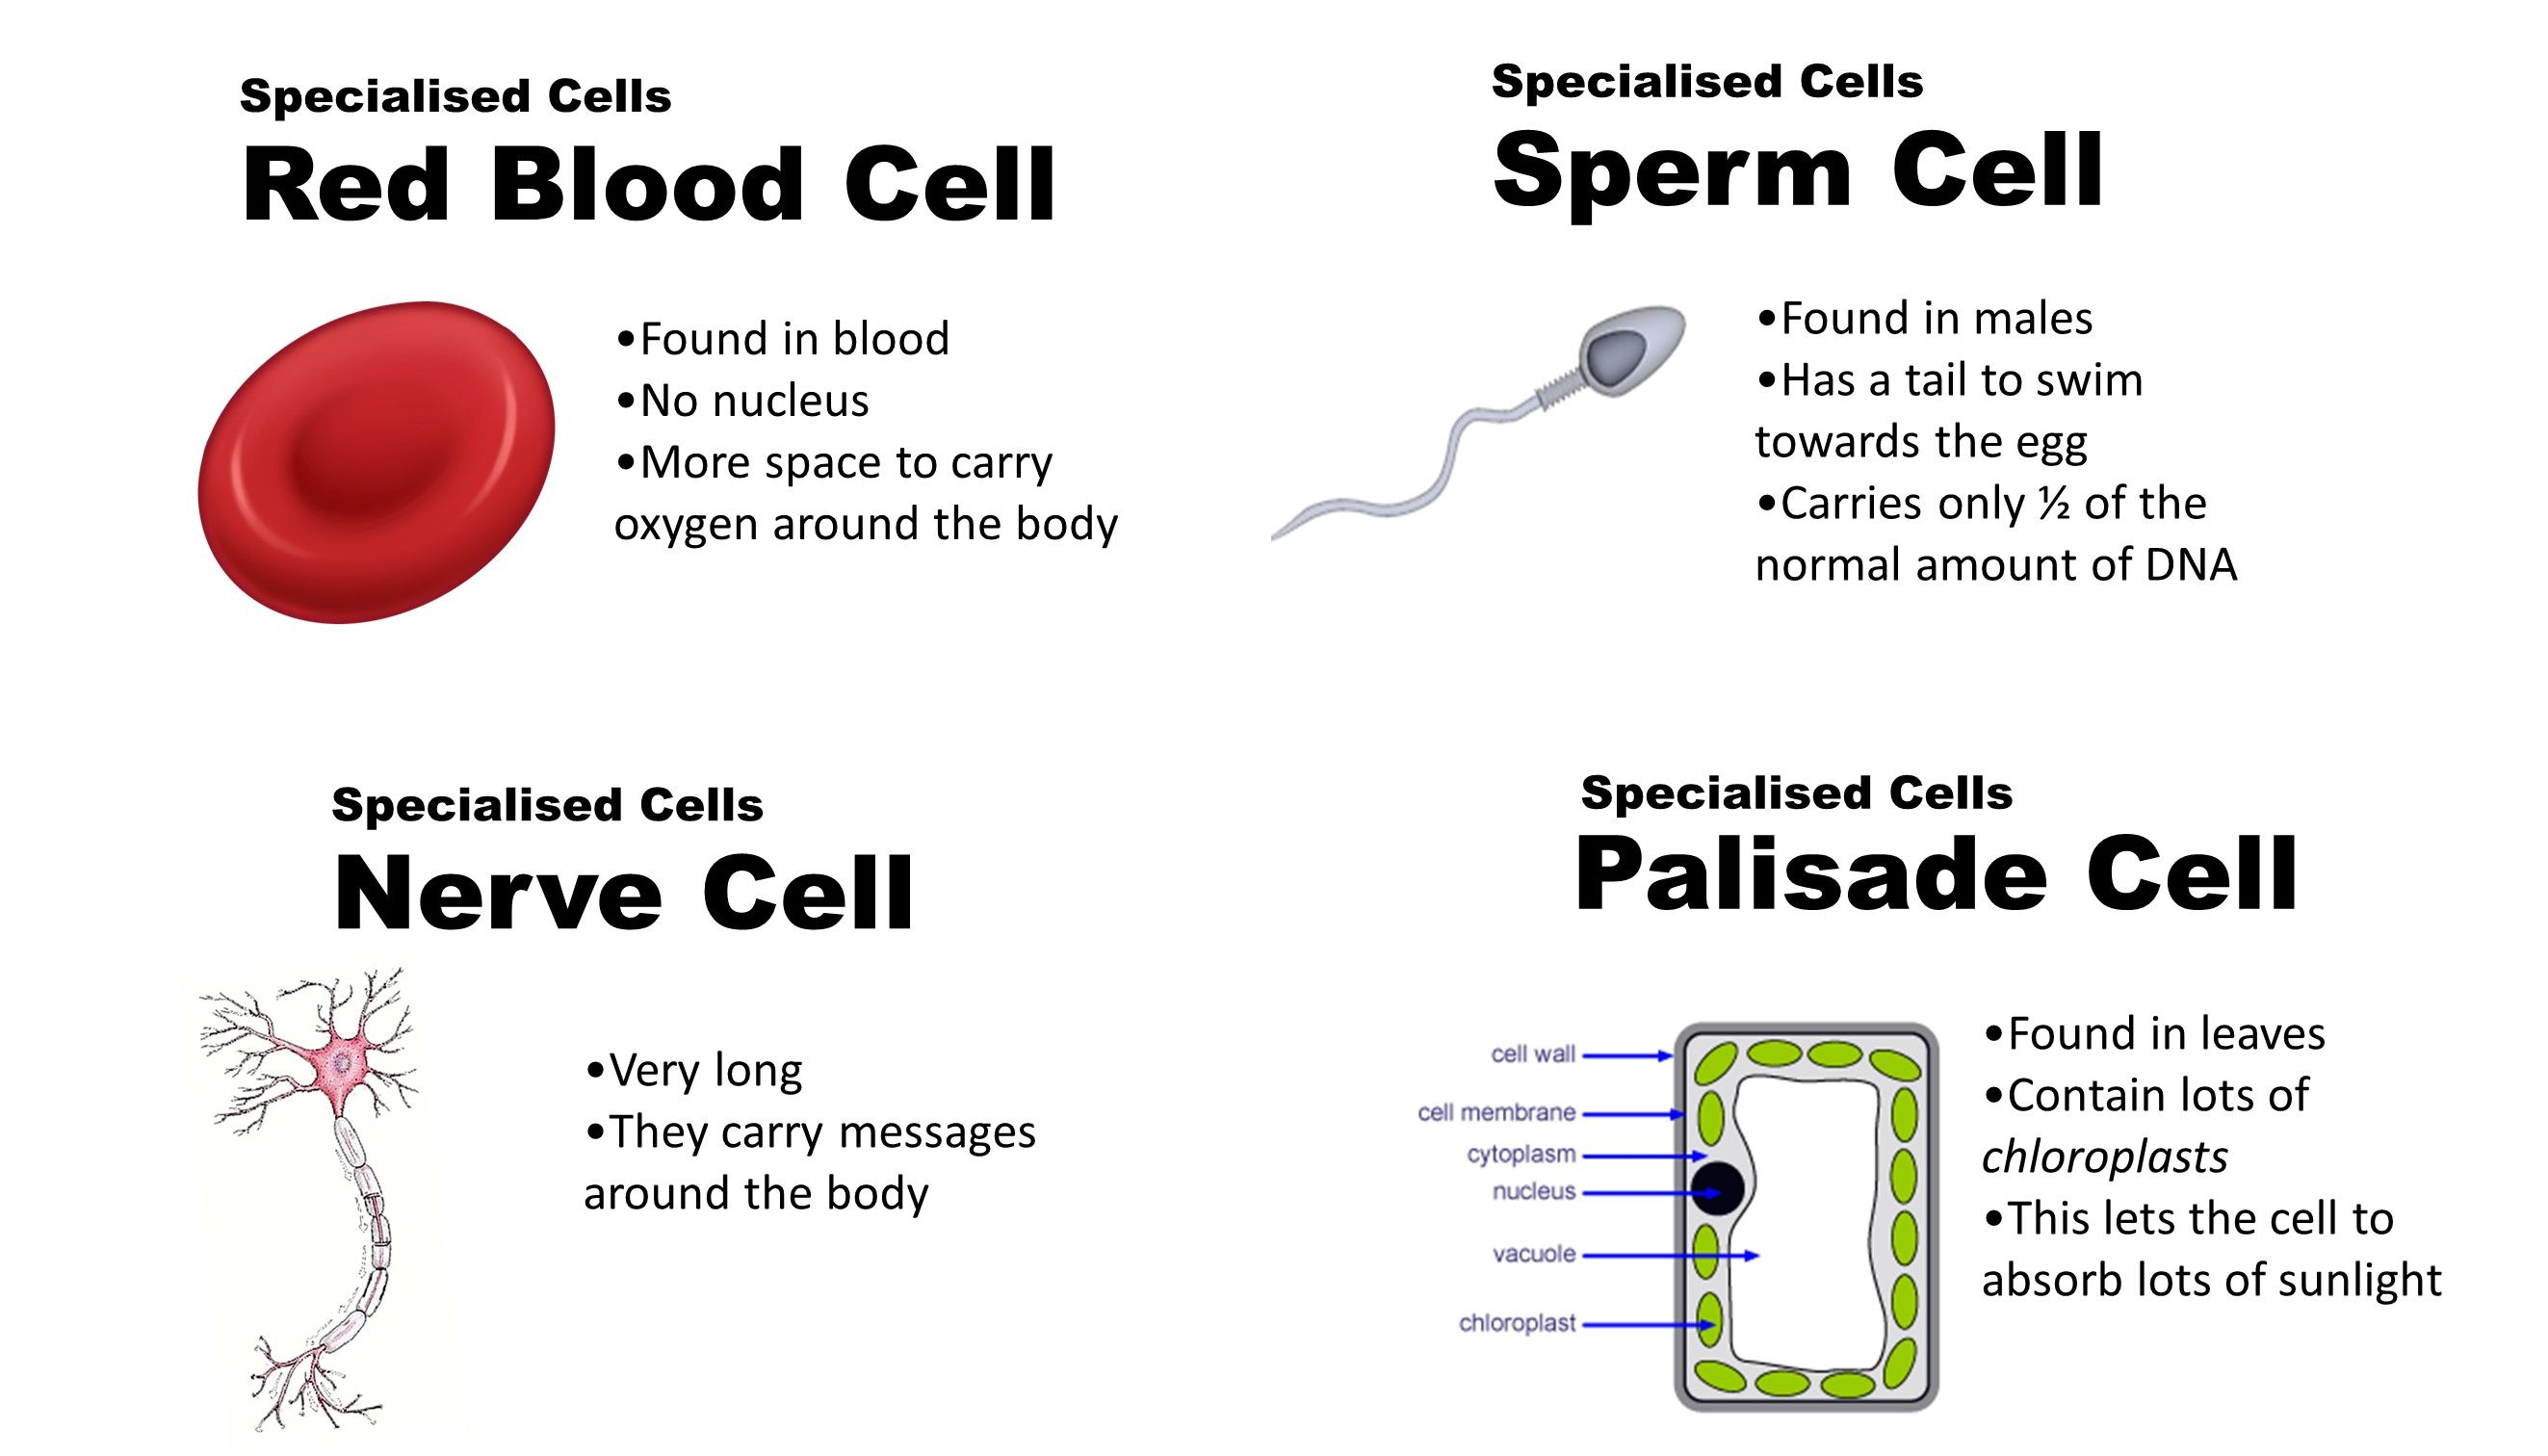 You tell cell membrane from a sperm cell possible